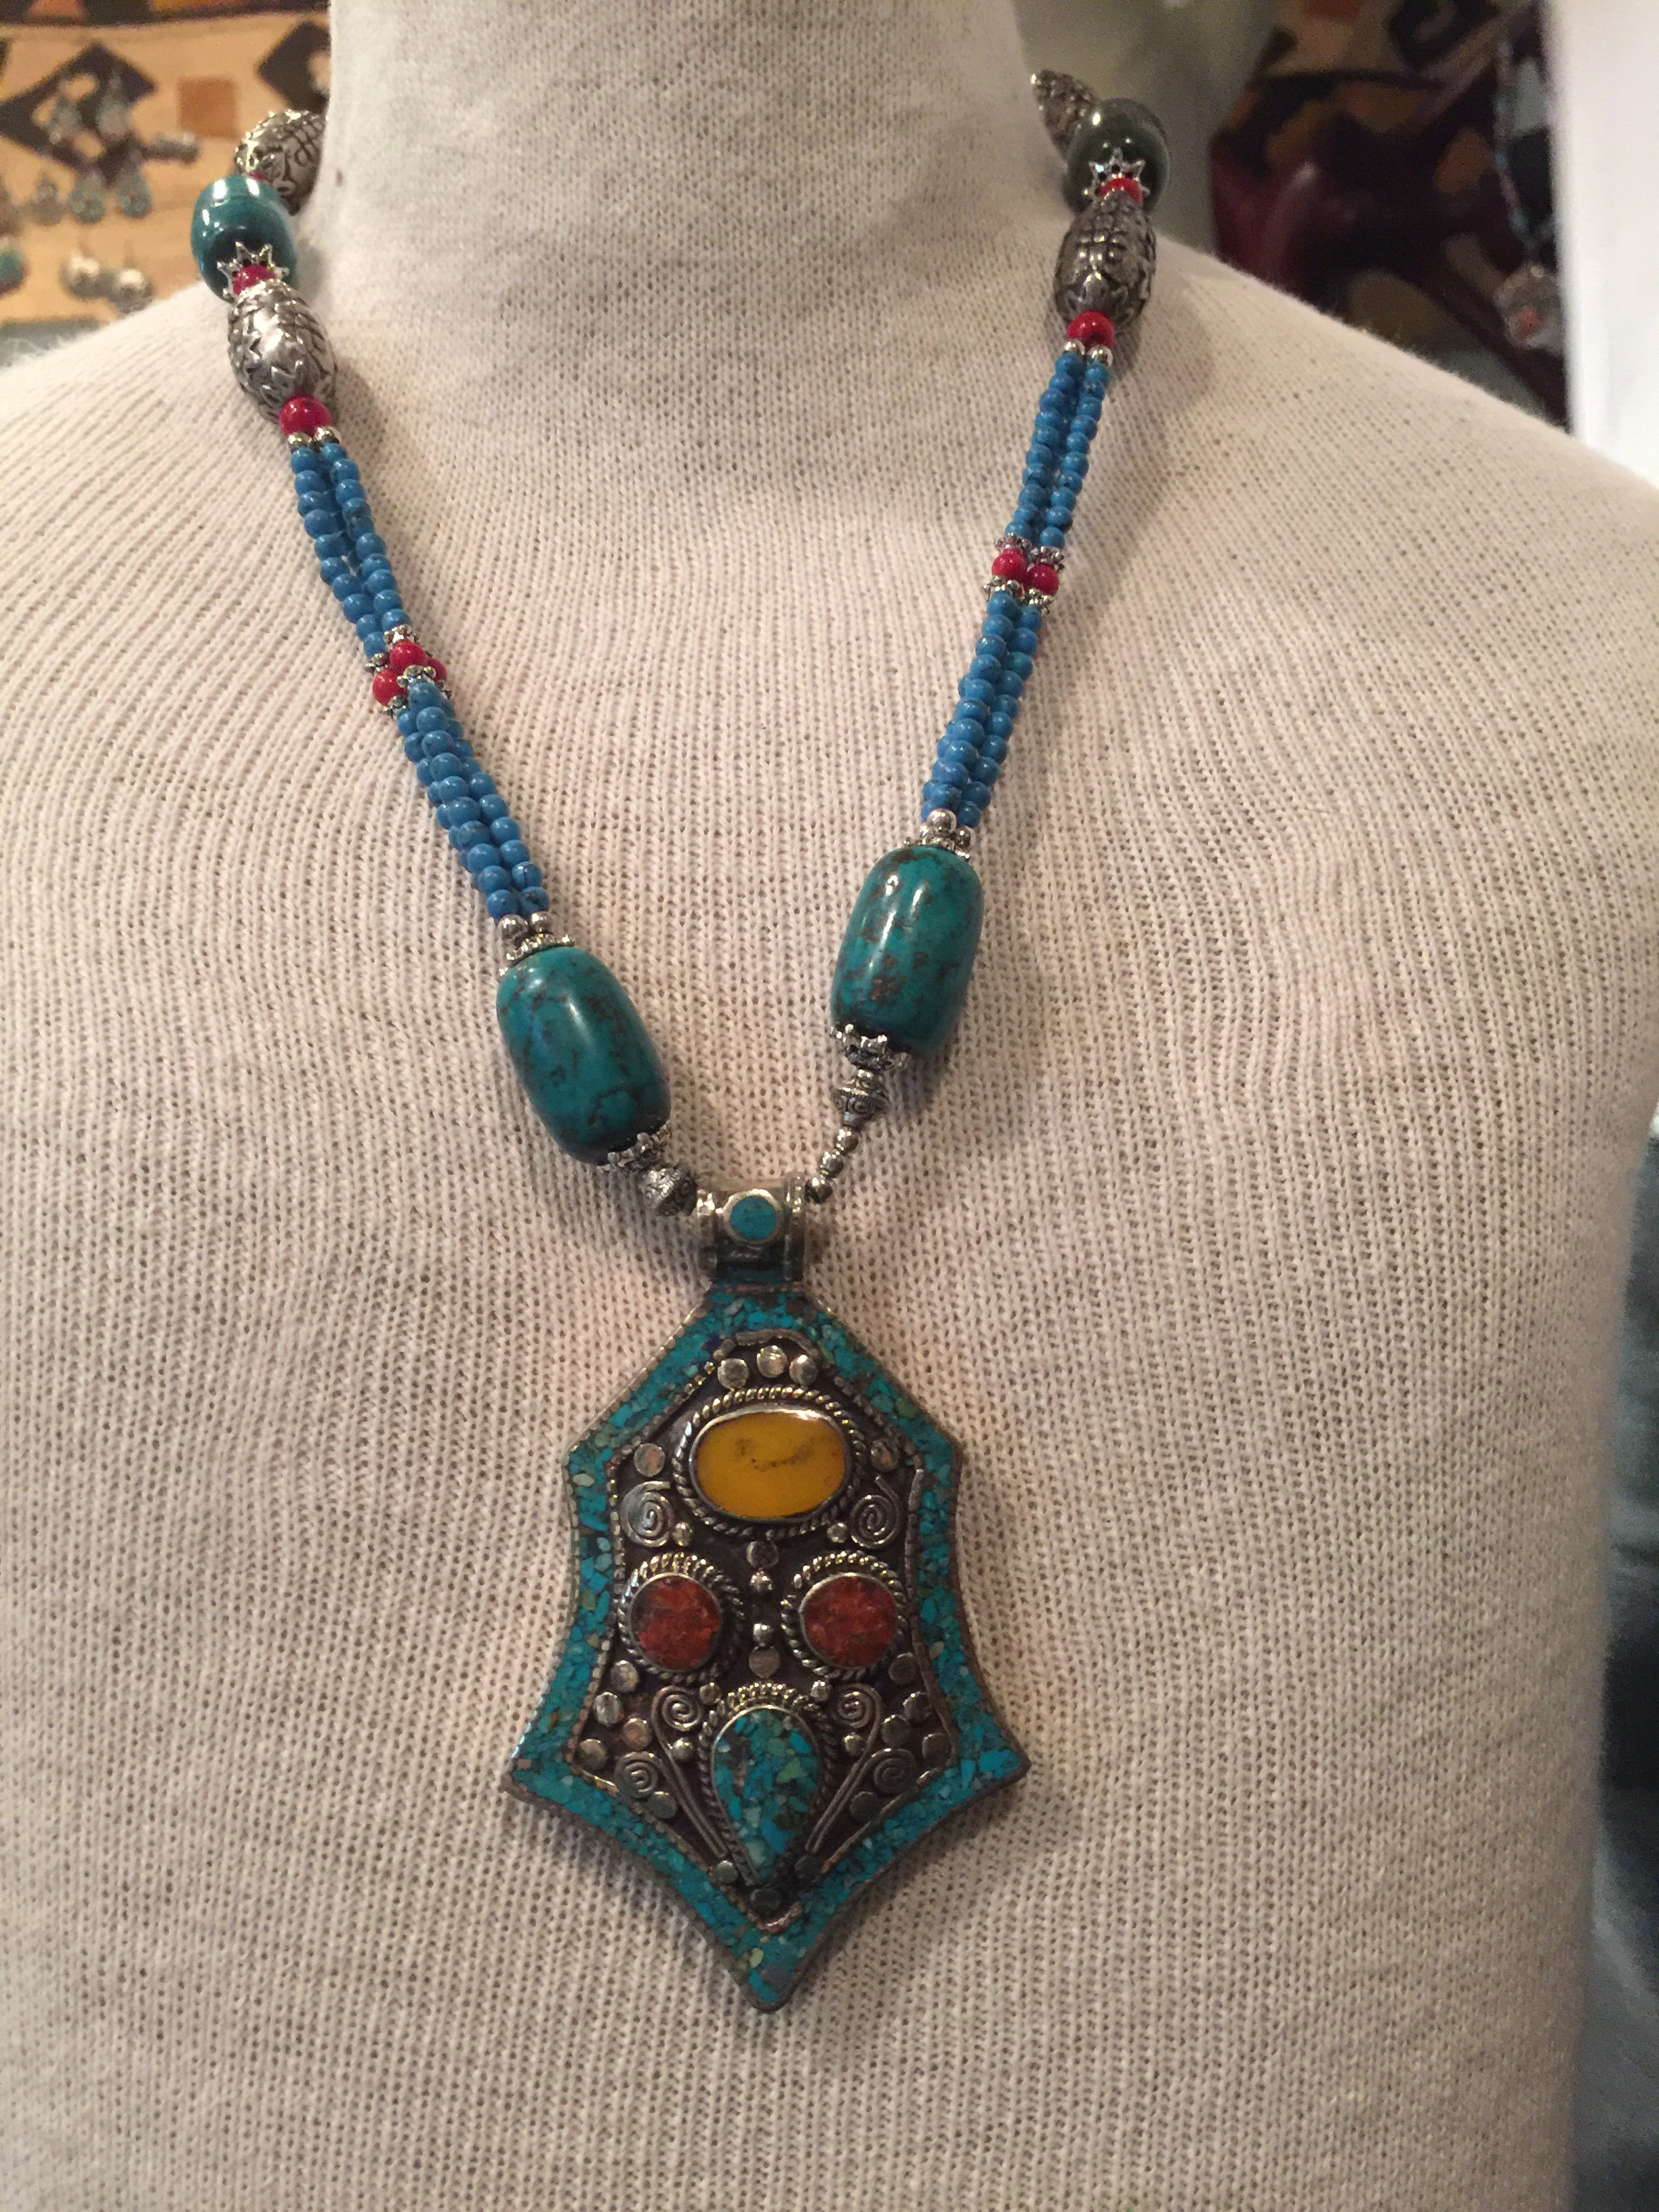 Another light, but full of color, Handmade Moroccan necklace  (buy on etsy, $70)